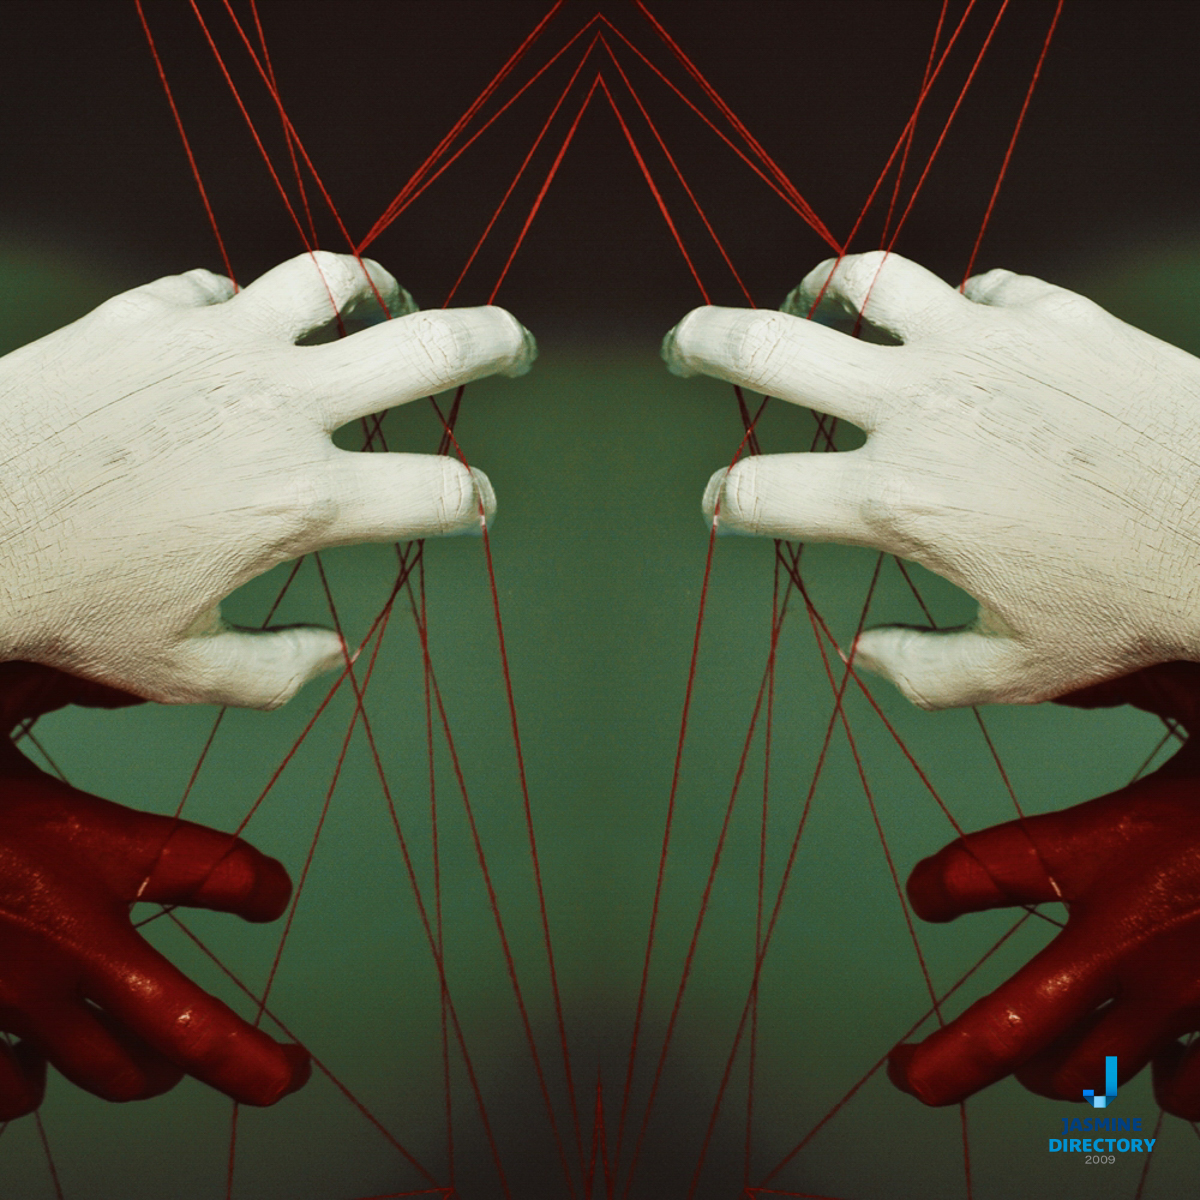 Two pairs of hands painted in white and red on green blackground